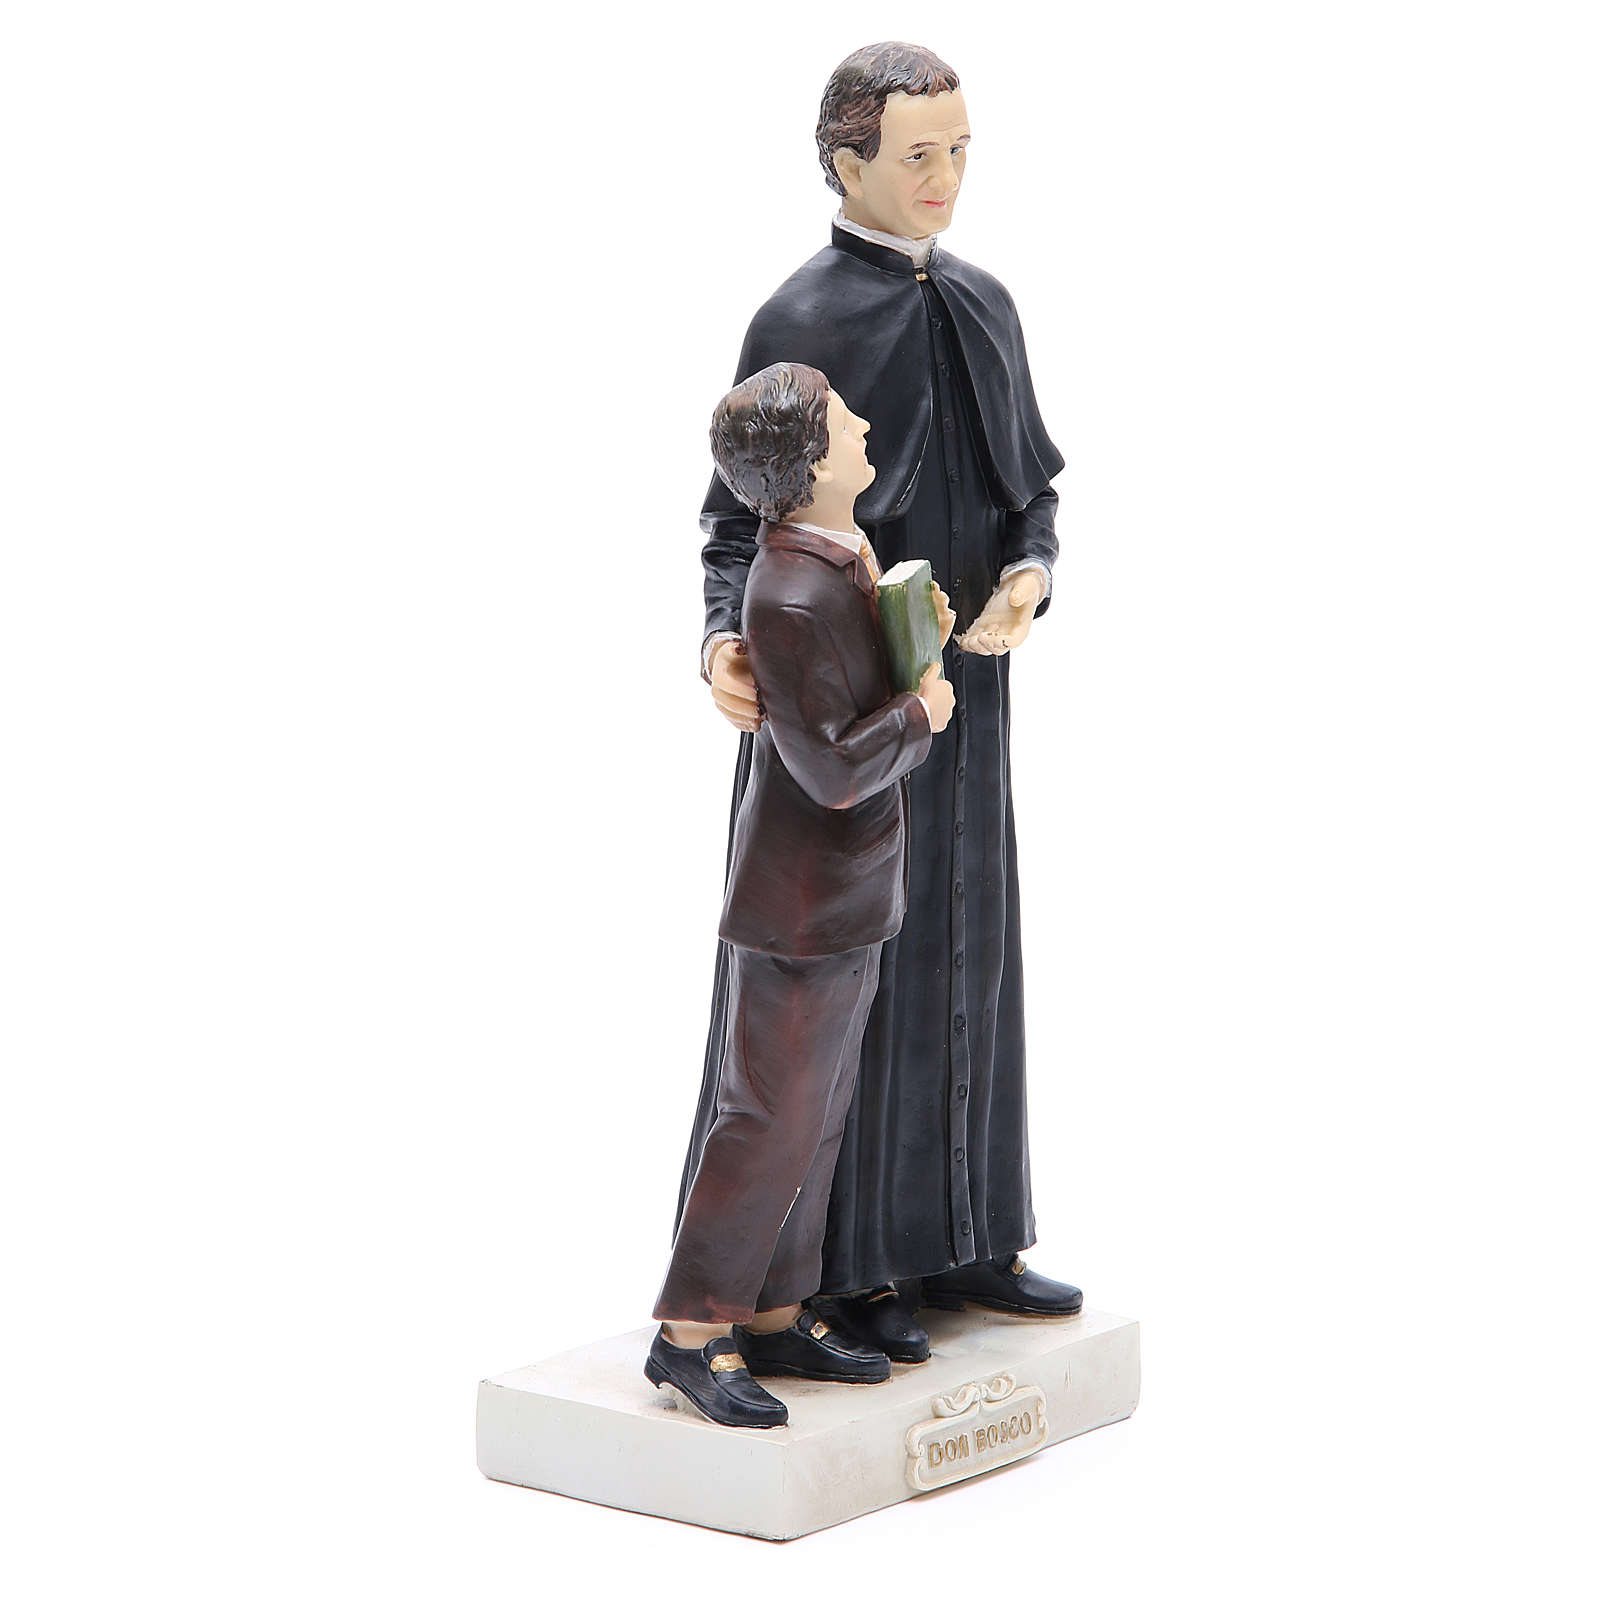 Estatua Don Bosco y San Domenico Savio 30 cm resina 4